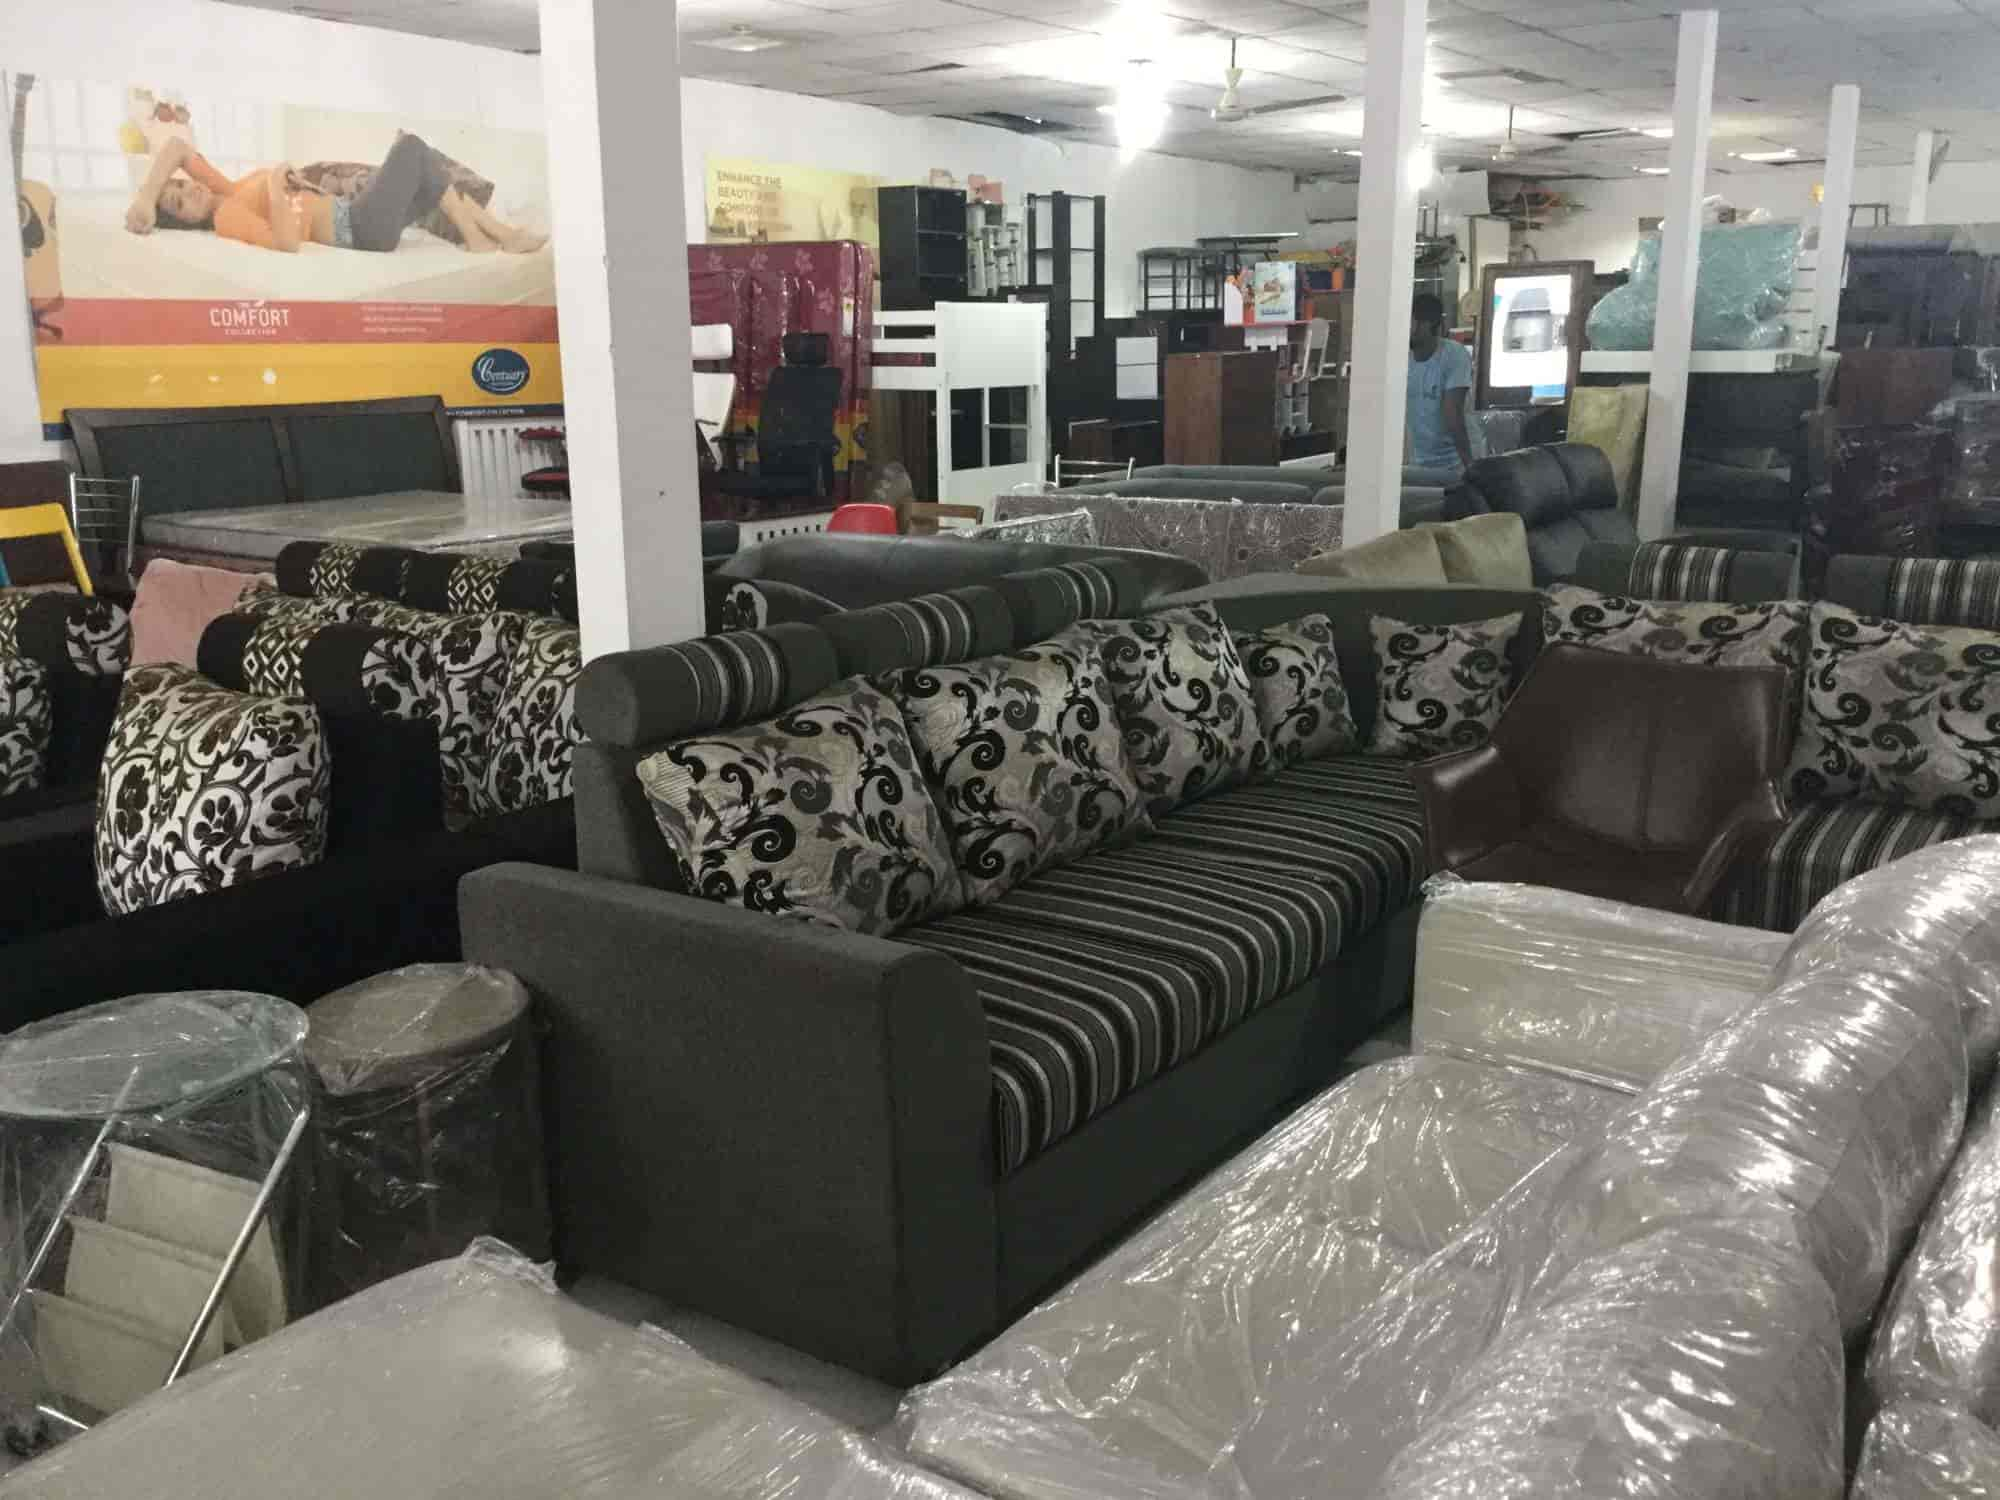 Modern Furniture Jp Nagar 7th Phase Furniture Dealers in